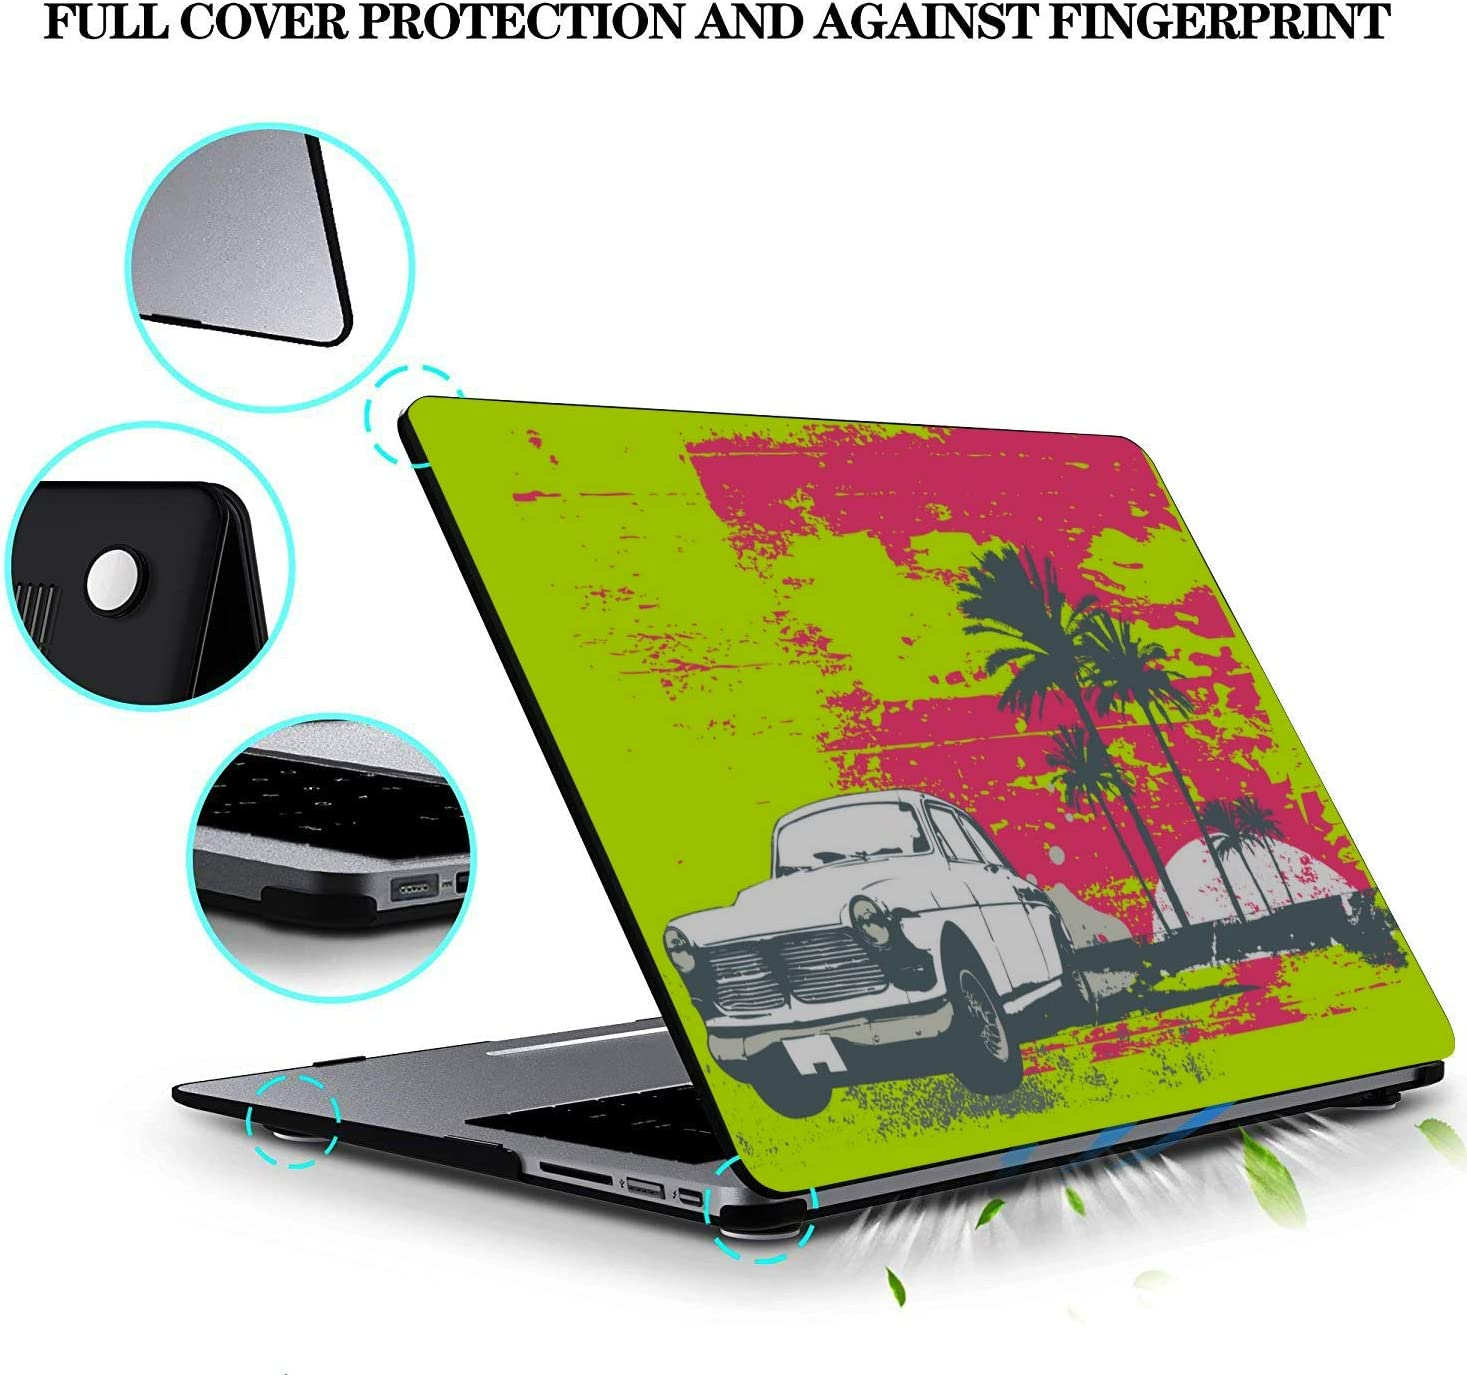 Computer Cover Summer Retrocar Beach Palm Tree Plastic Hard Shell Compatible Mac Air 11 Pro 13 15 MacBook Pro Covers Protection for MacBook 2016-2019 Version